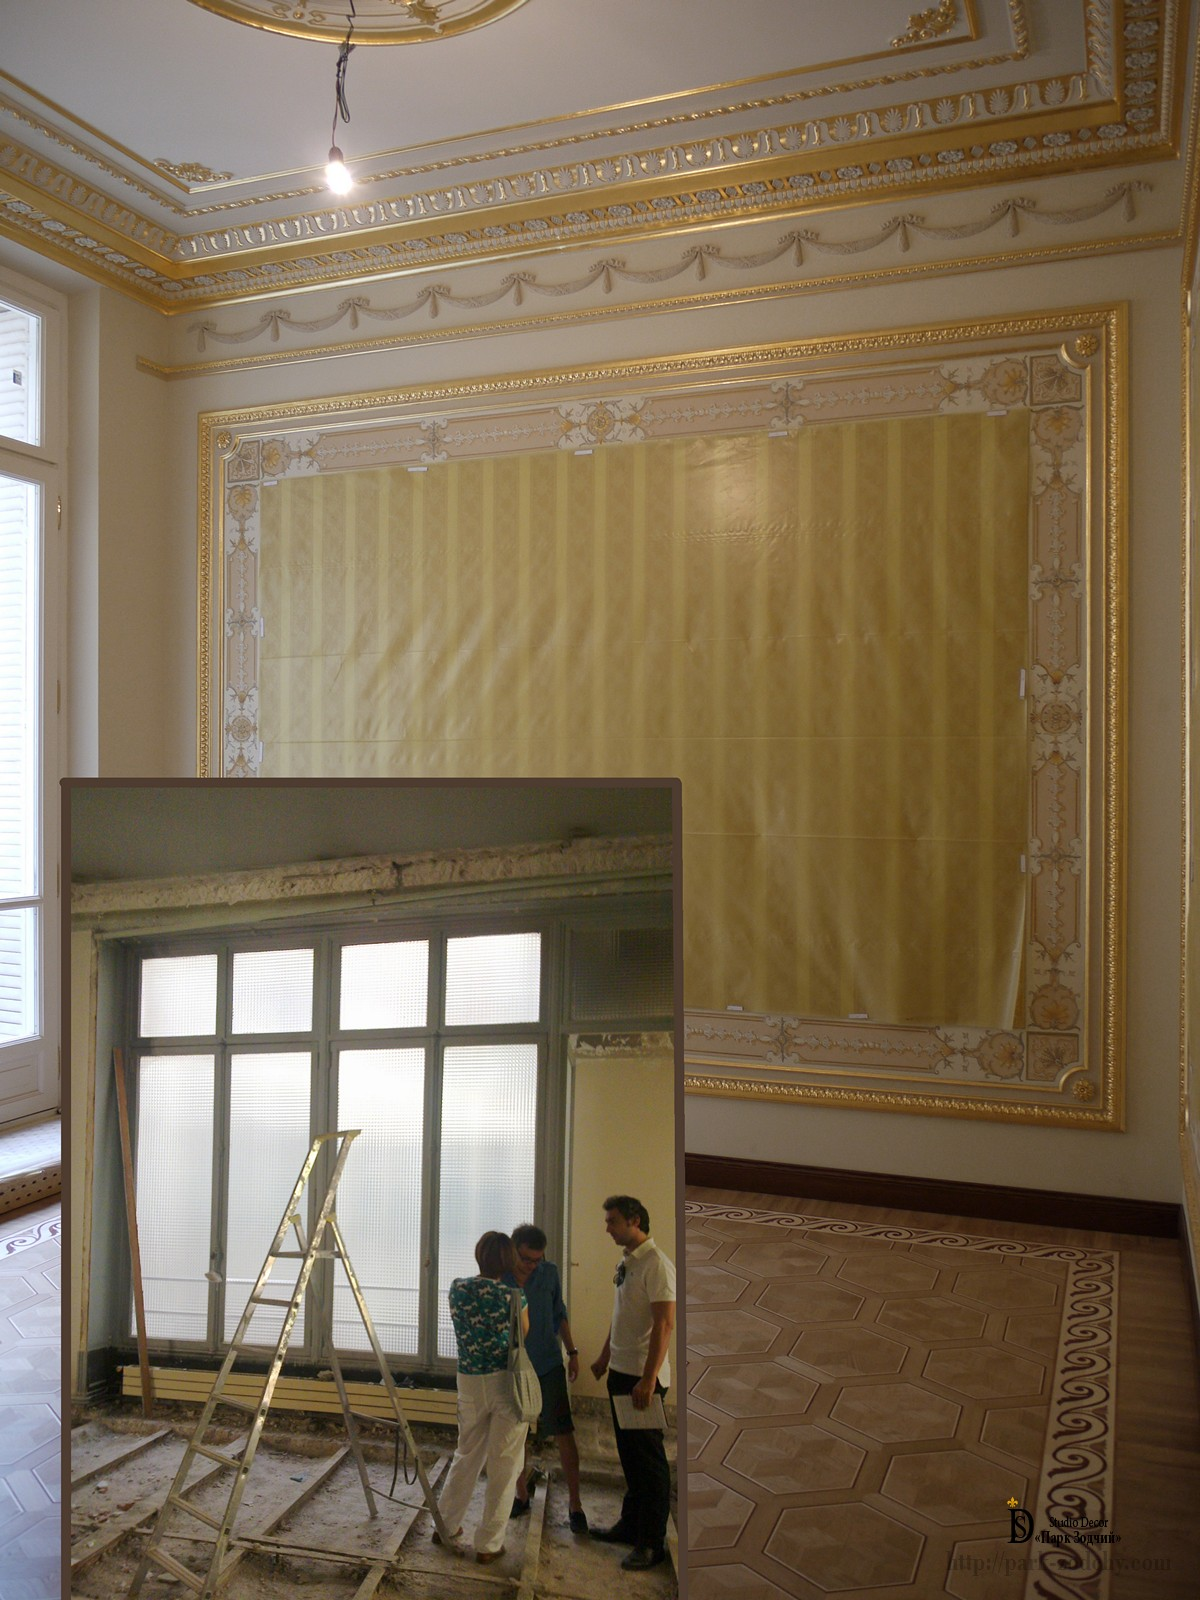 Planning the installation of stucco decoration